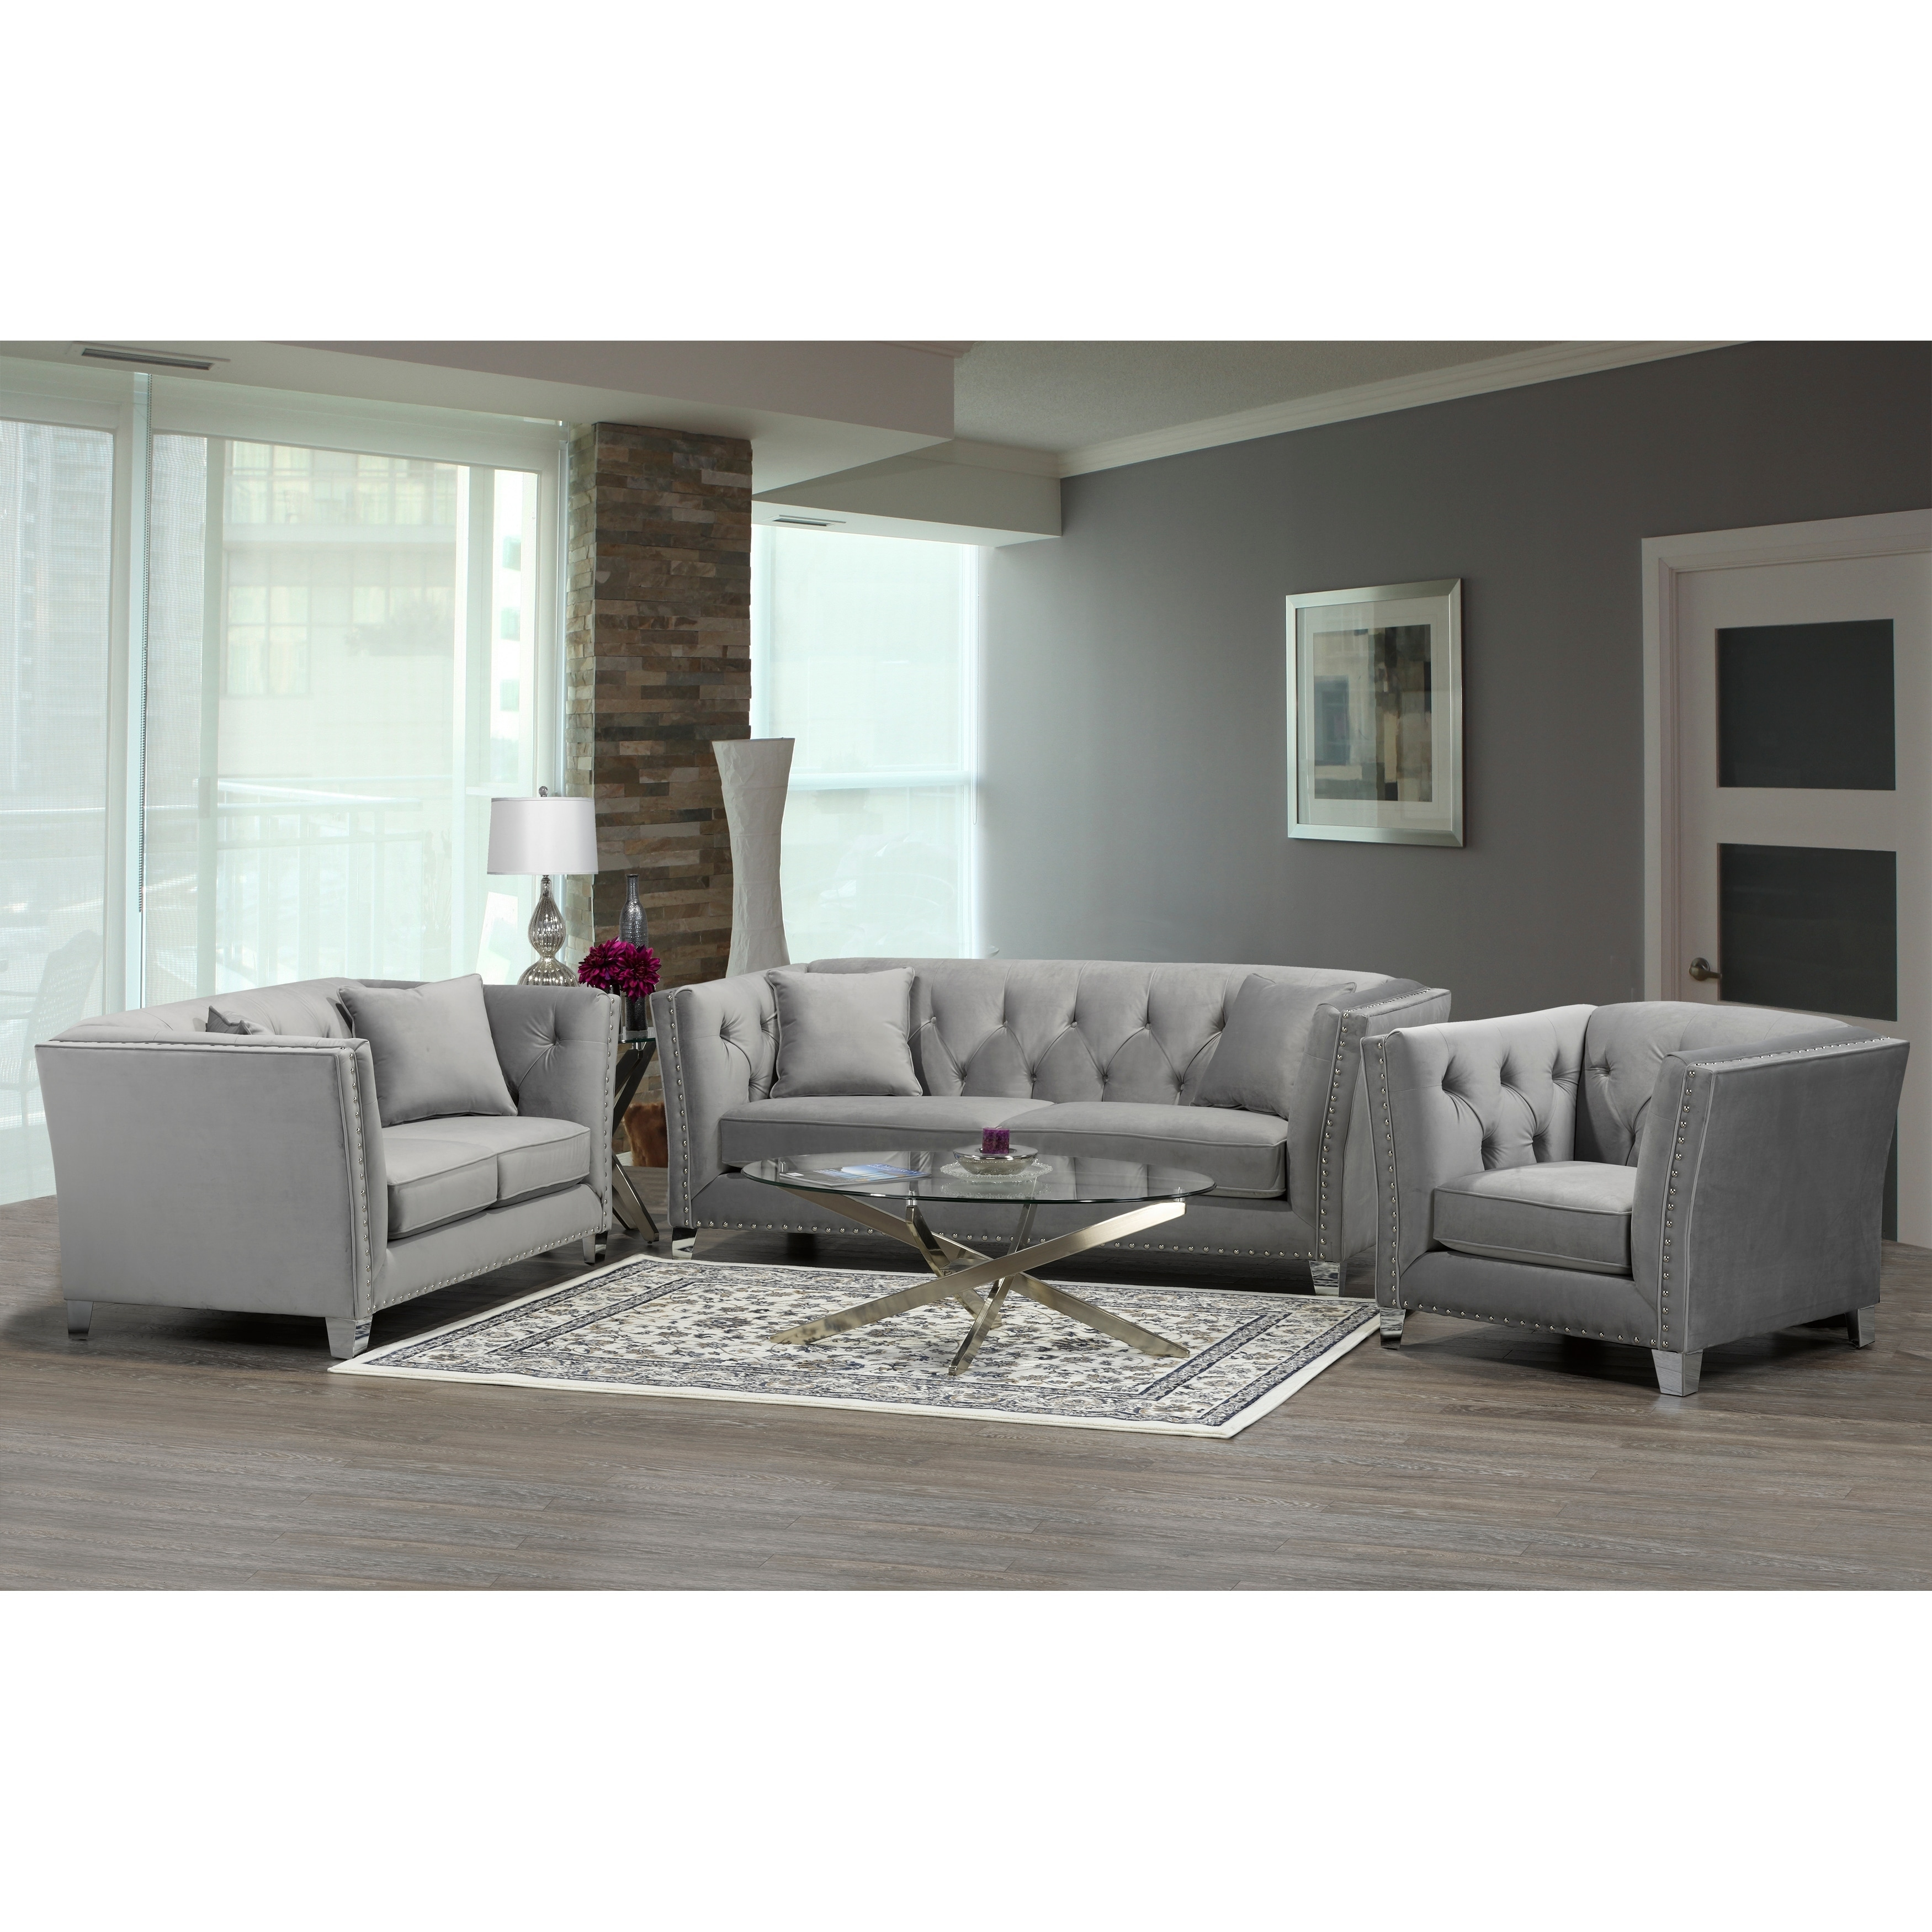 Fiona Modern Grey Velvet Tufted Nailhead Sofa Loveseat And Chair On Free Shipping Today 20847536